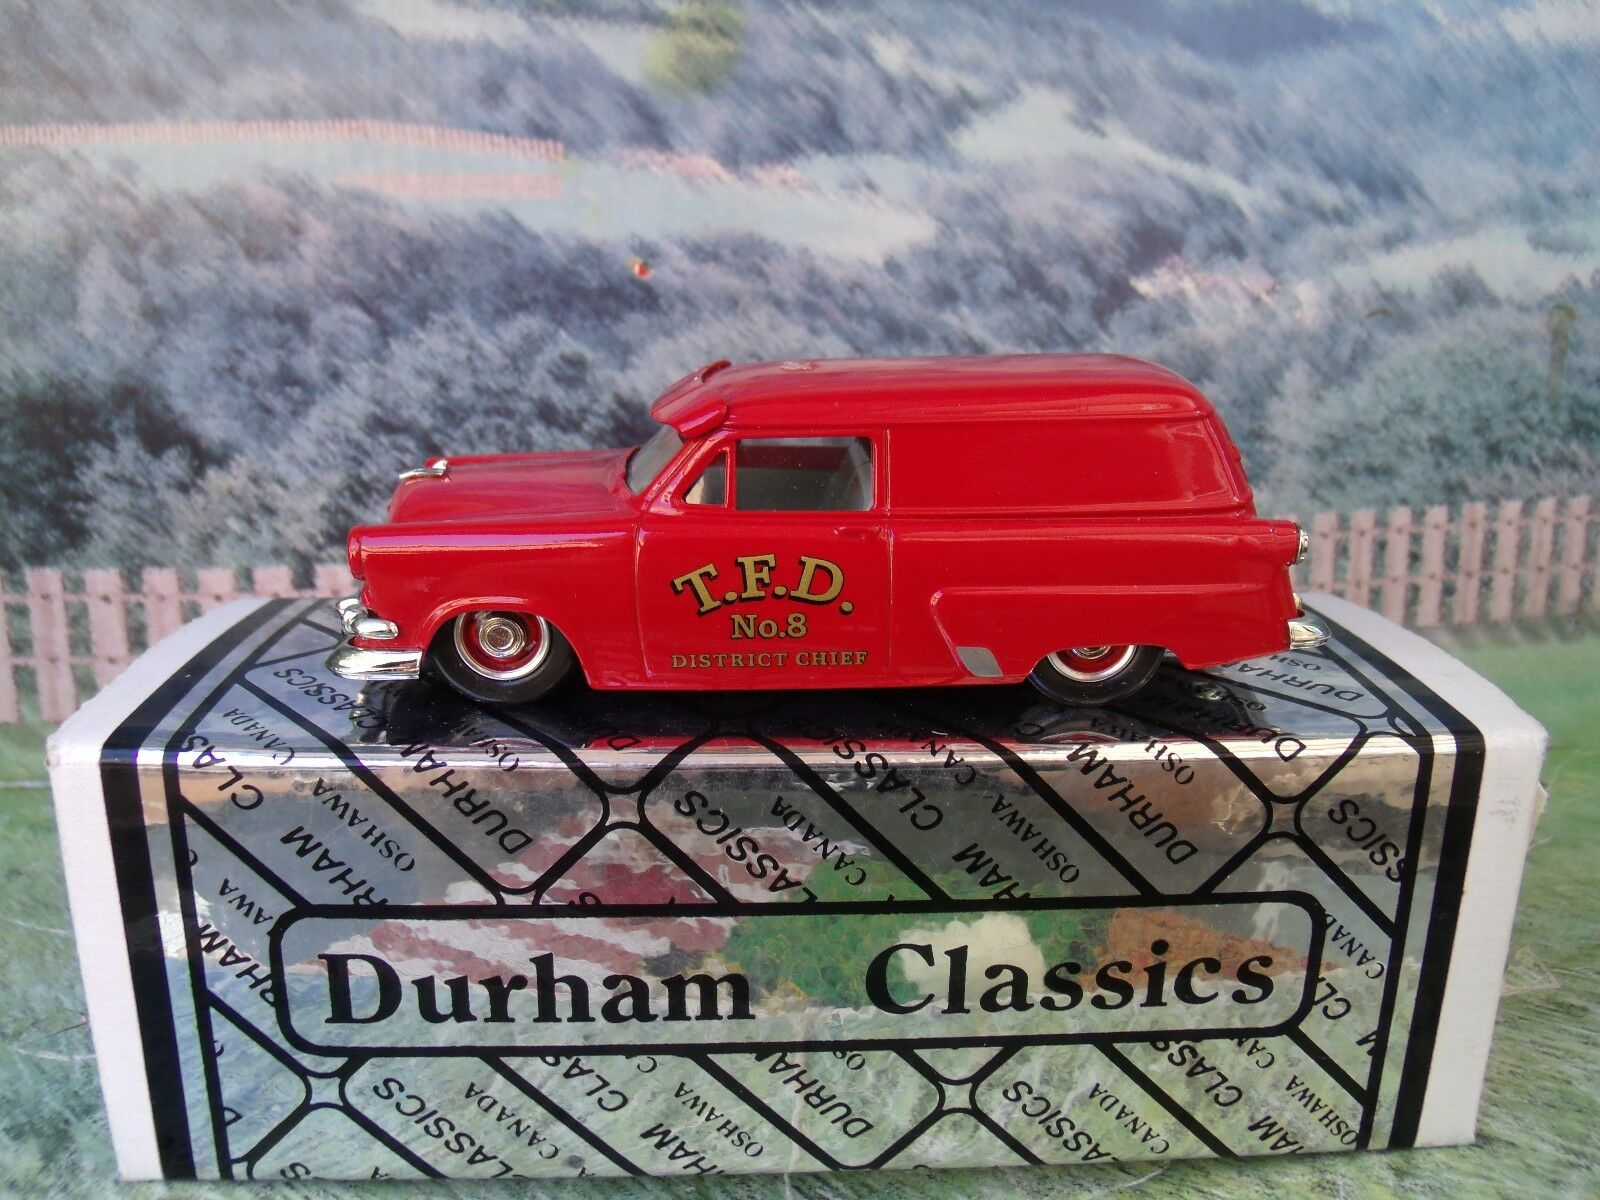 1/43  Durham classics Ford courier 1954 Fire 1 of 300